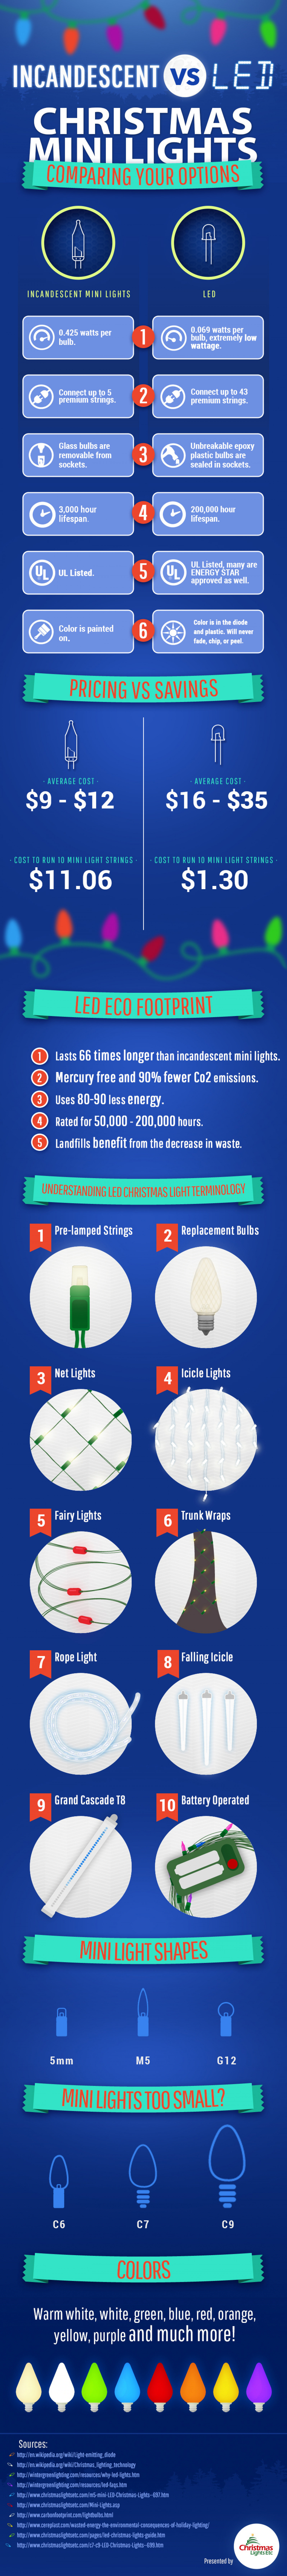 Incandescent Vs LED Christmas Lights Infographic